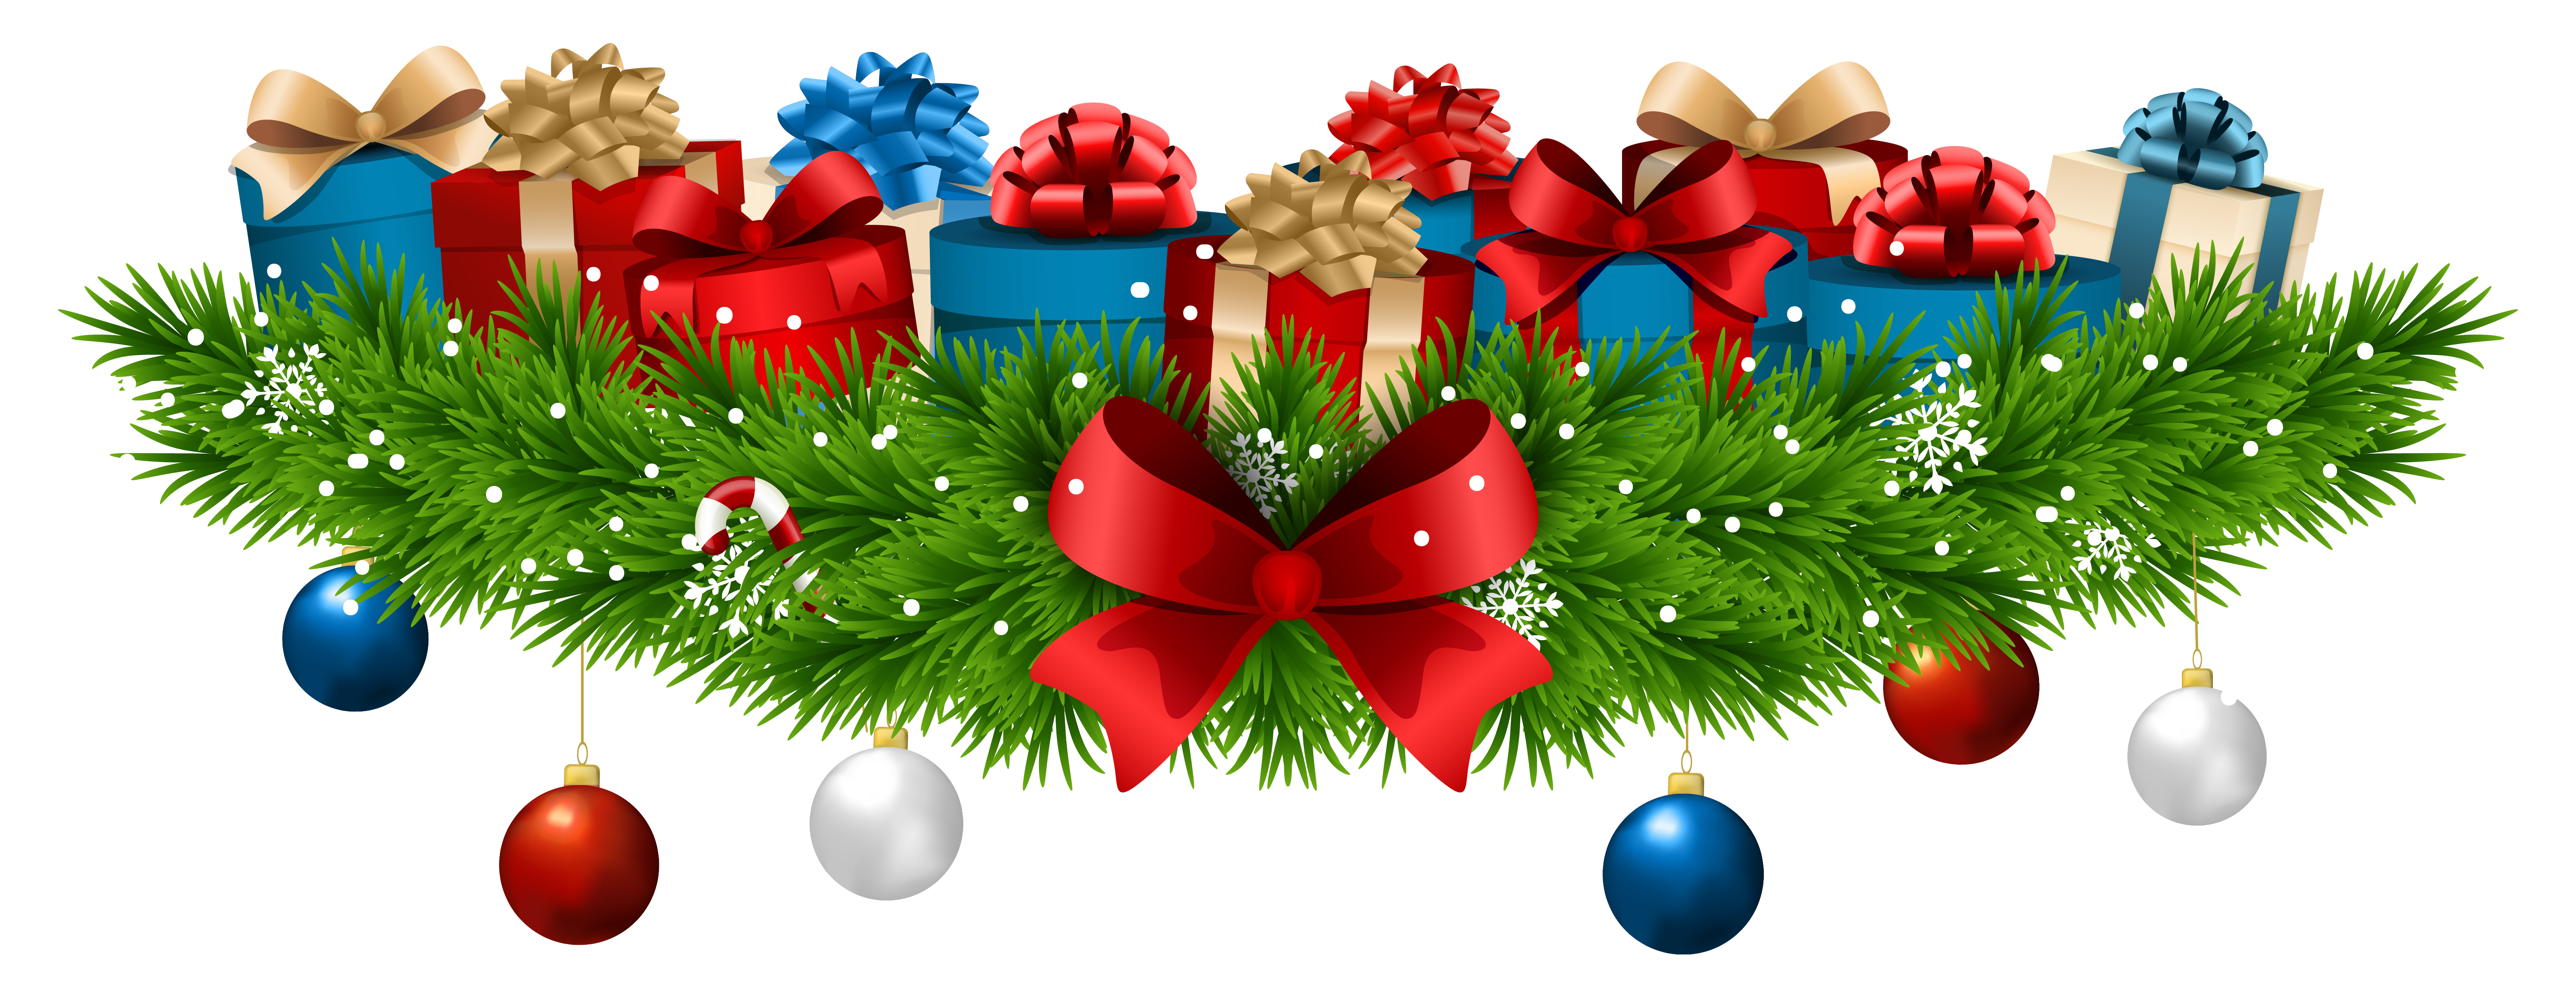 Chritmas decorations clipart banner royalty free Pin by Melva on Clipart | Christmas decorations, Christmas ... banner royalty free